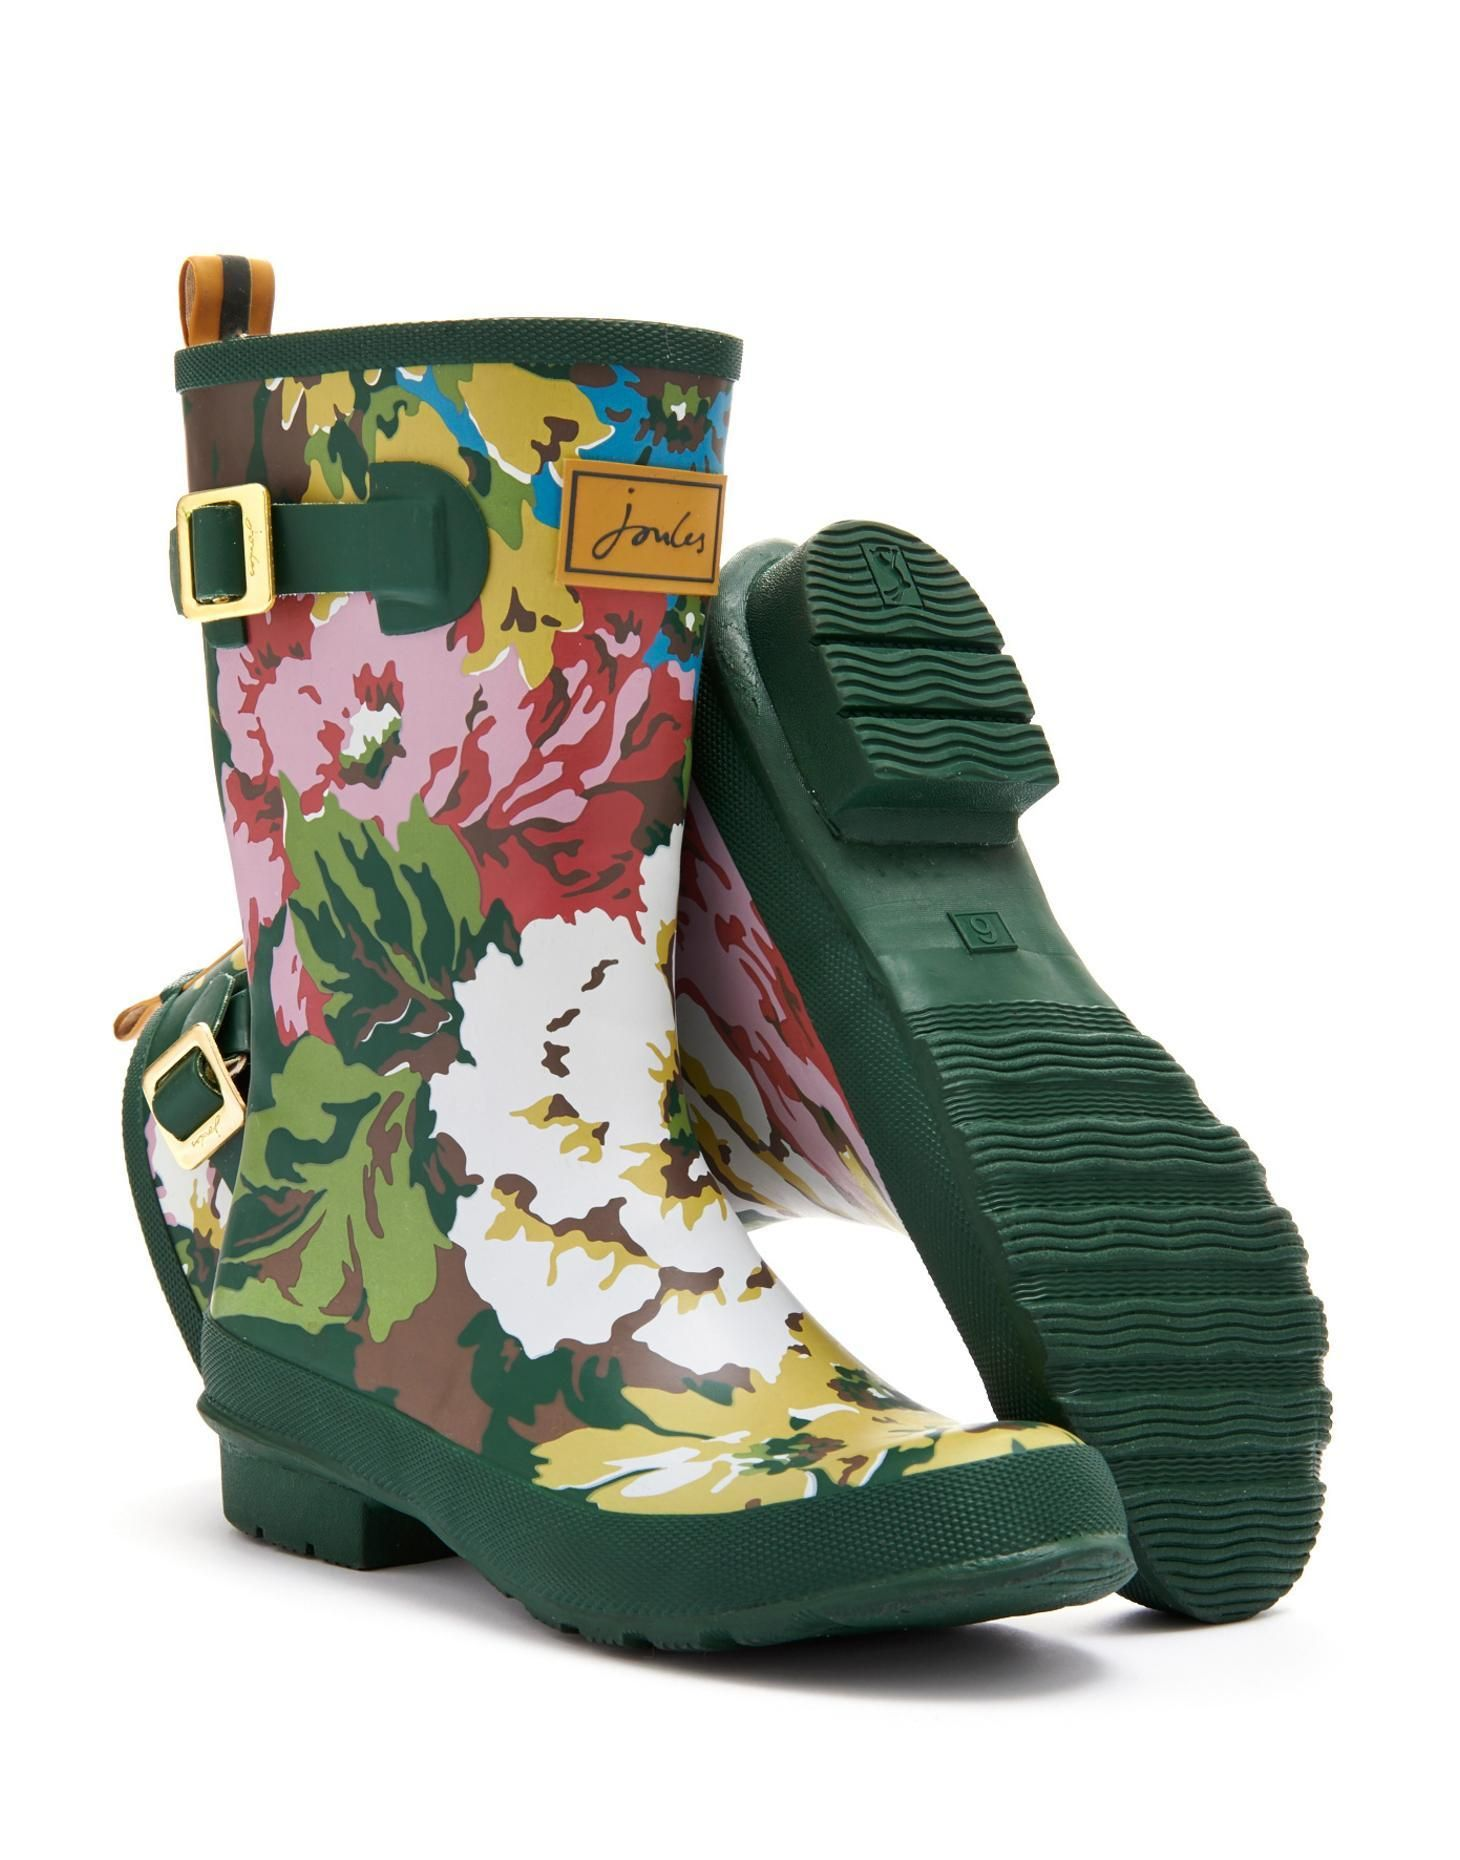 Joules Womens Mid-Calf Welly, Green Cambridge Floral. A new mid ...